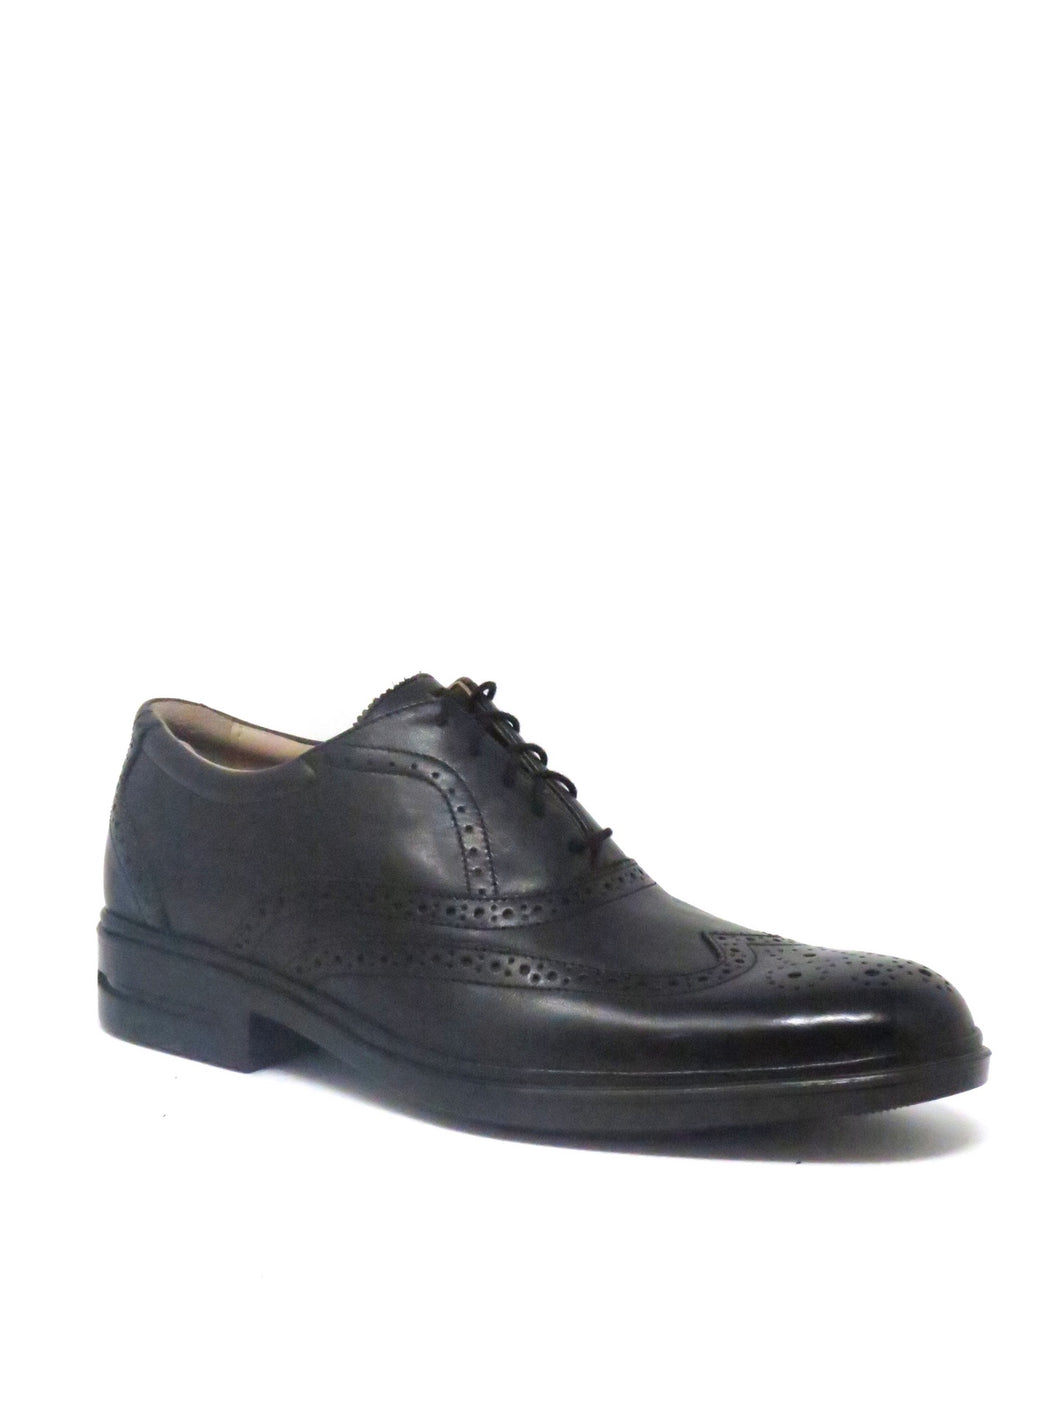 Rockport | APM12861 | Peyroux Wingtip | Black